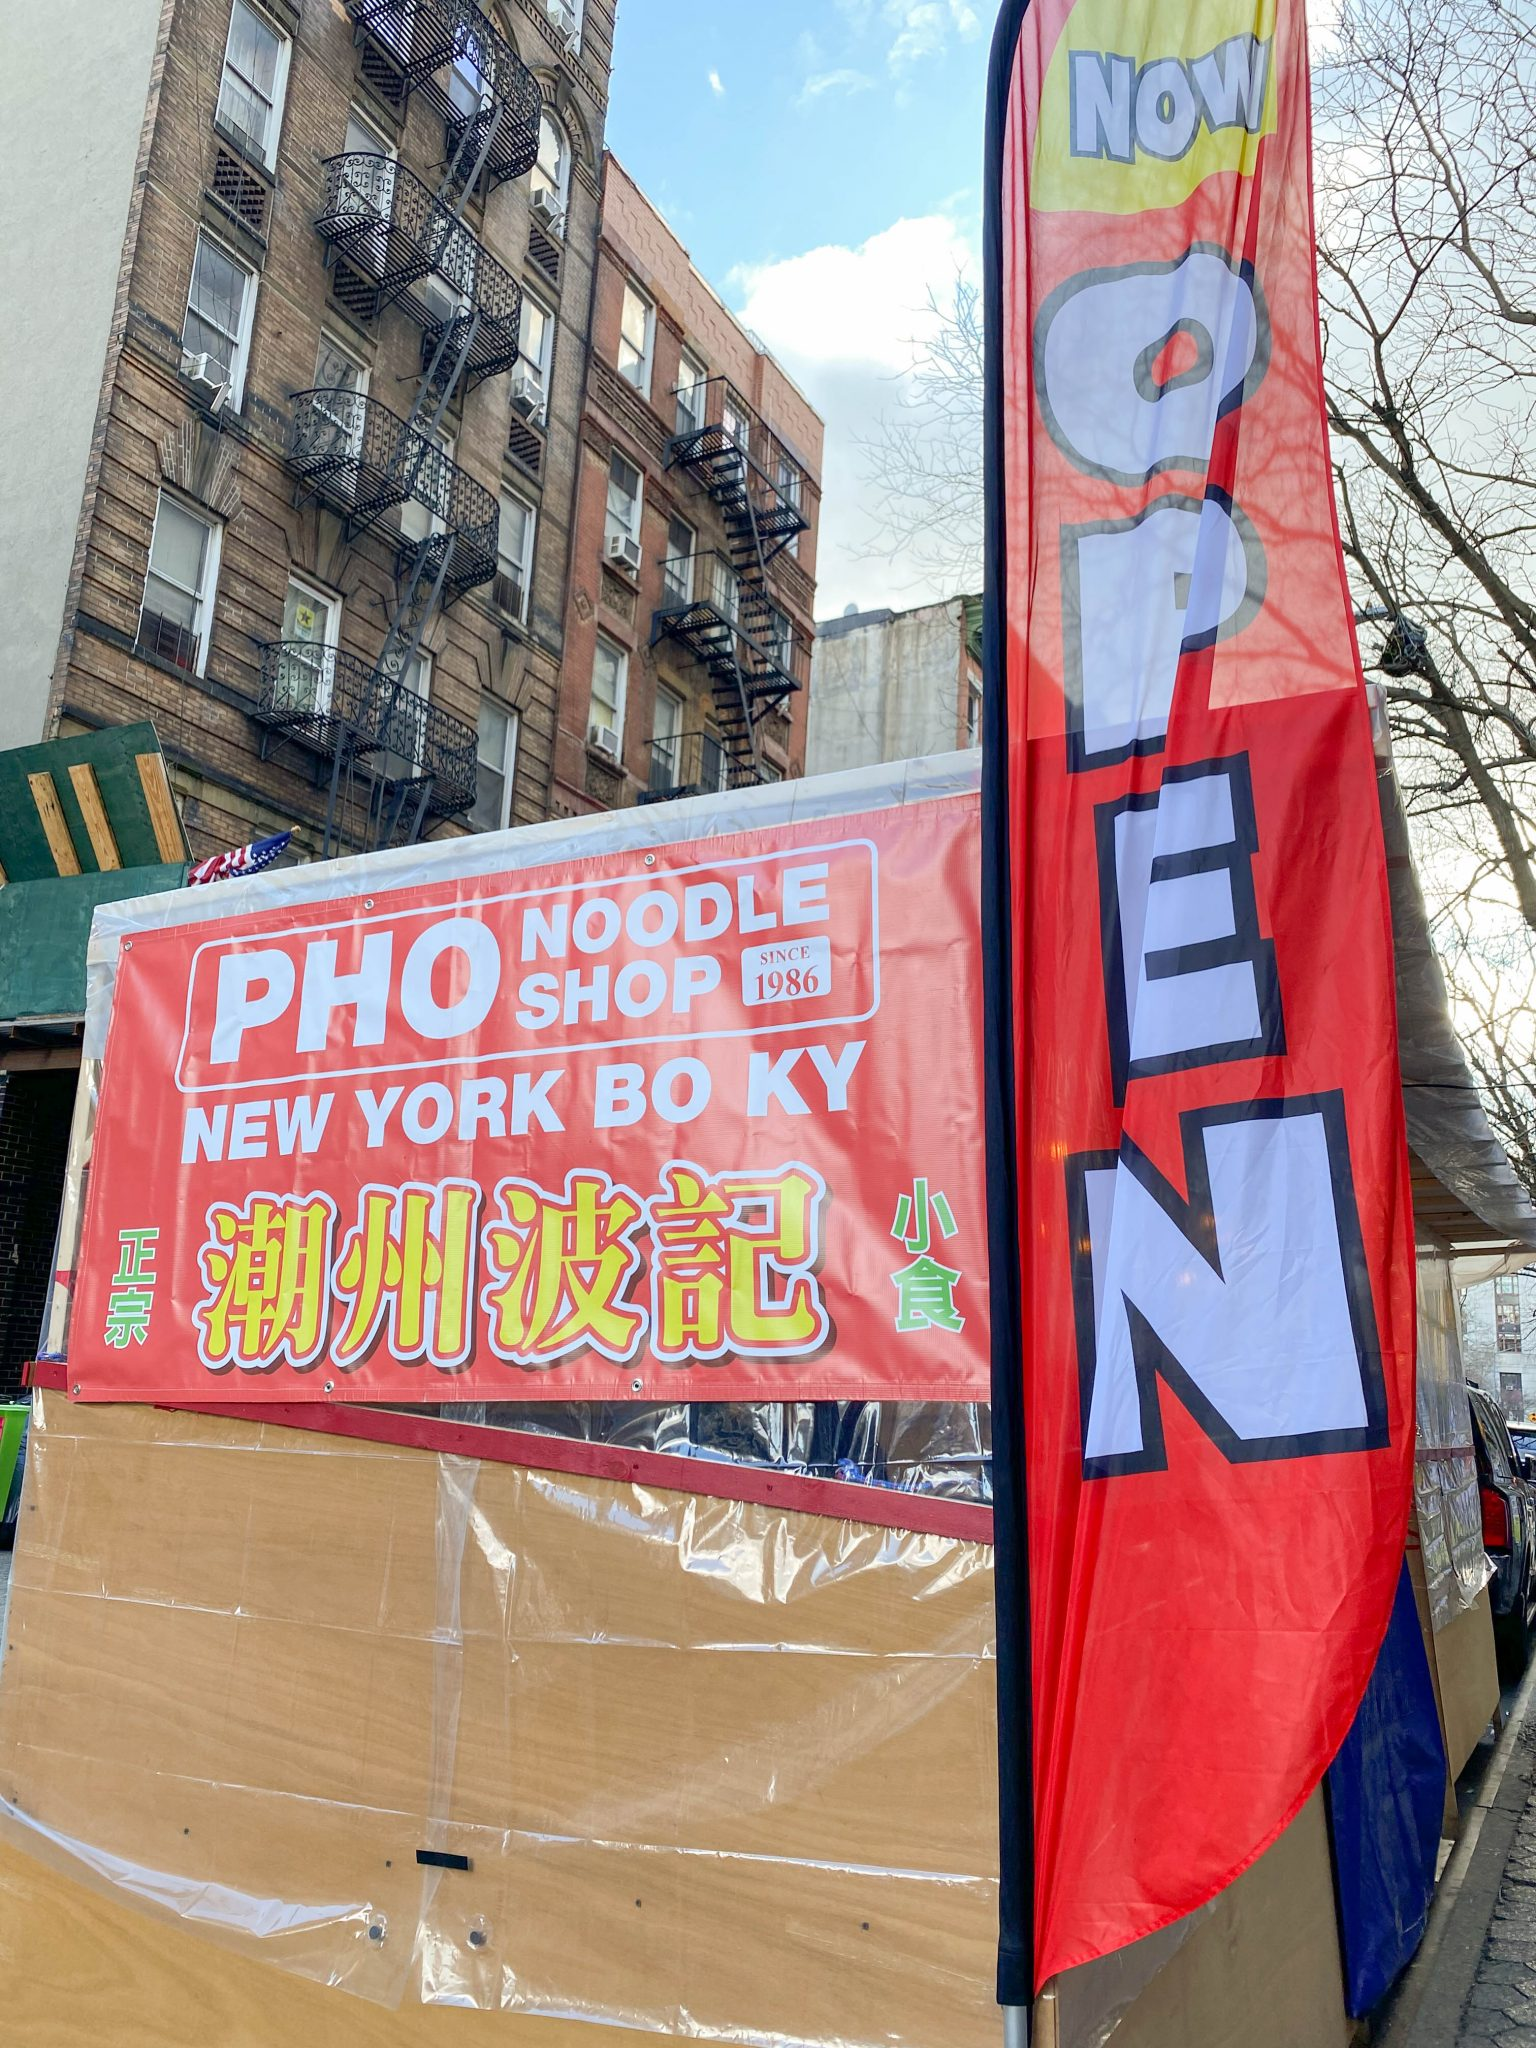 4 Small Businesses to Support in Chinatown NYC by Basically A Mess (image of New York Bo Ky restaurant in Chinatown New York City)